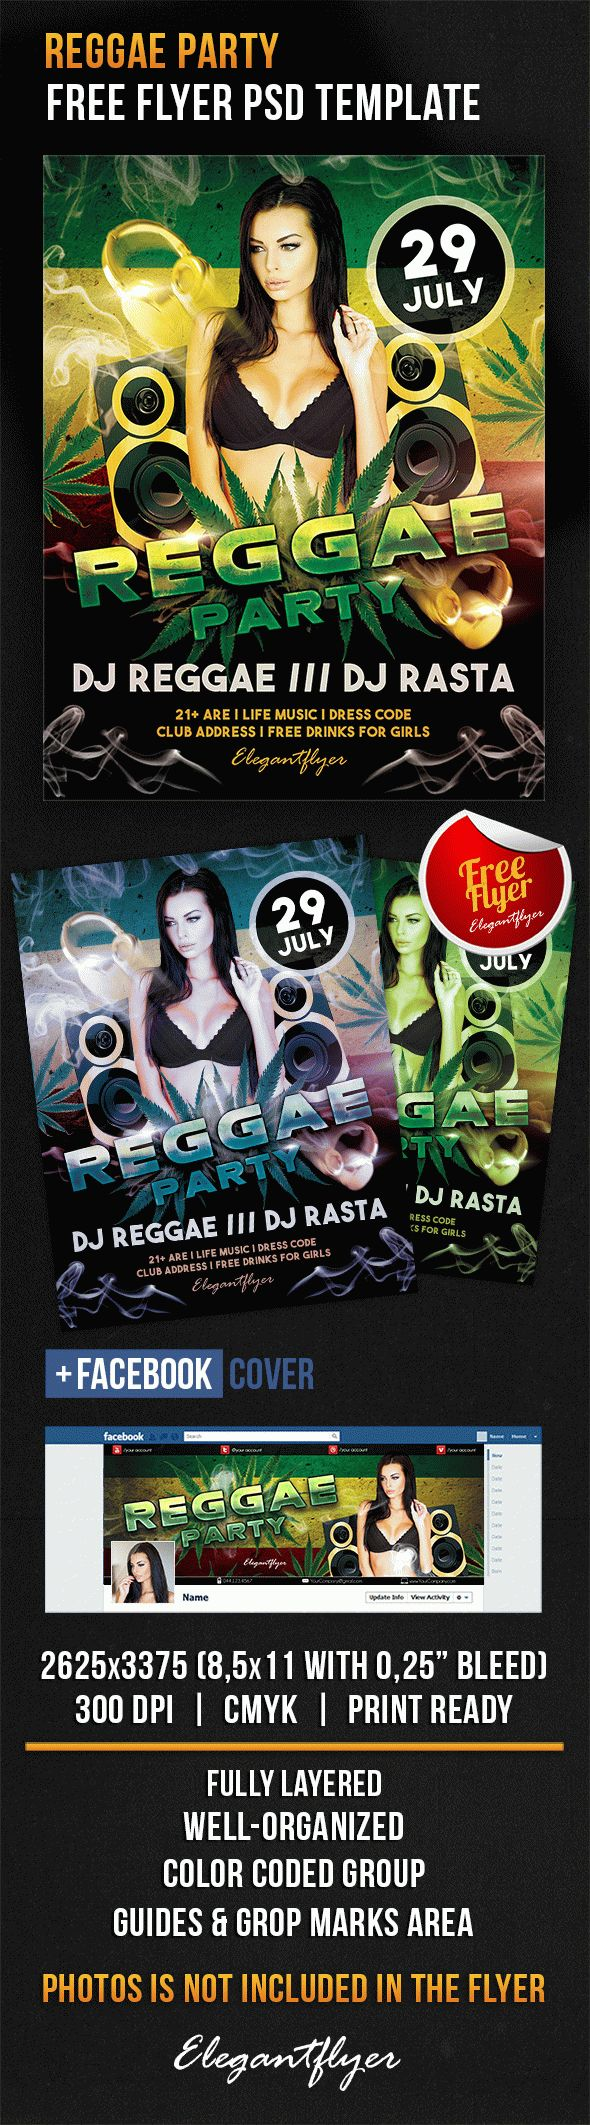 Reggae Party – Free Flyer PSD Template + Facebook Cover